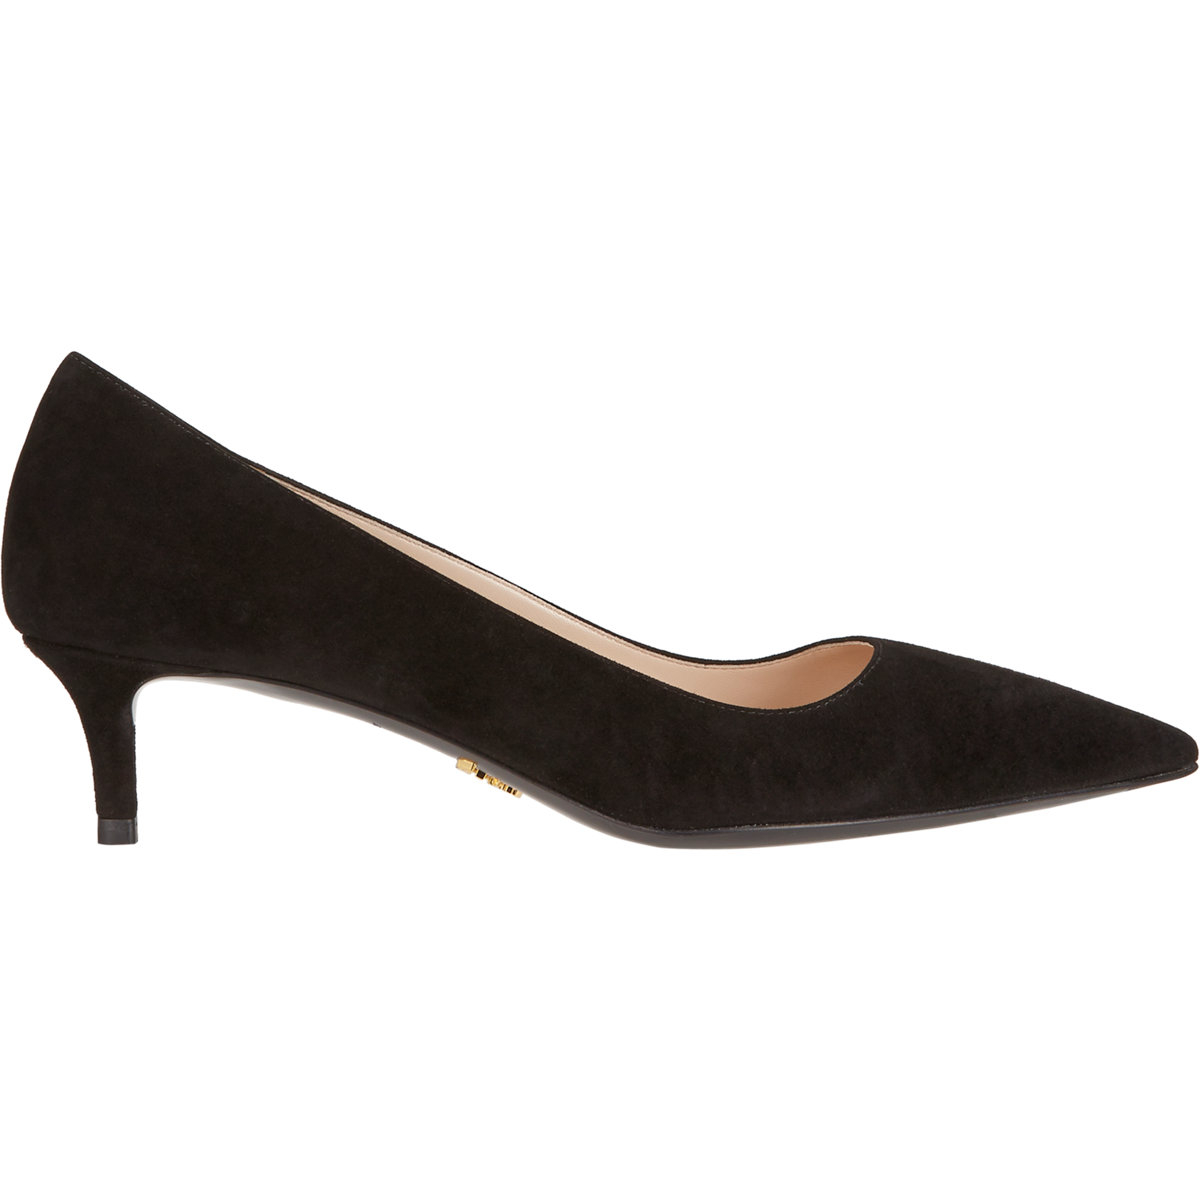 Kitten Heel Black Suede Shoes - The Cutest Kittens